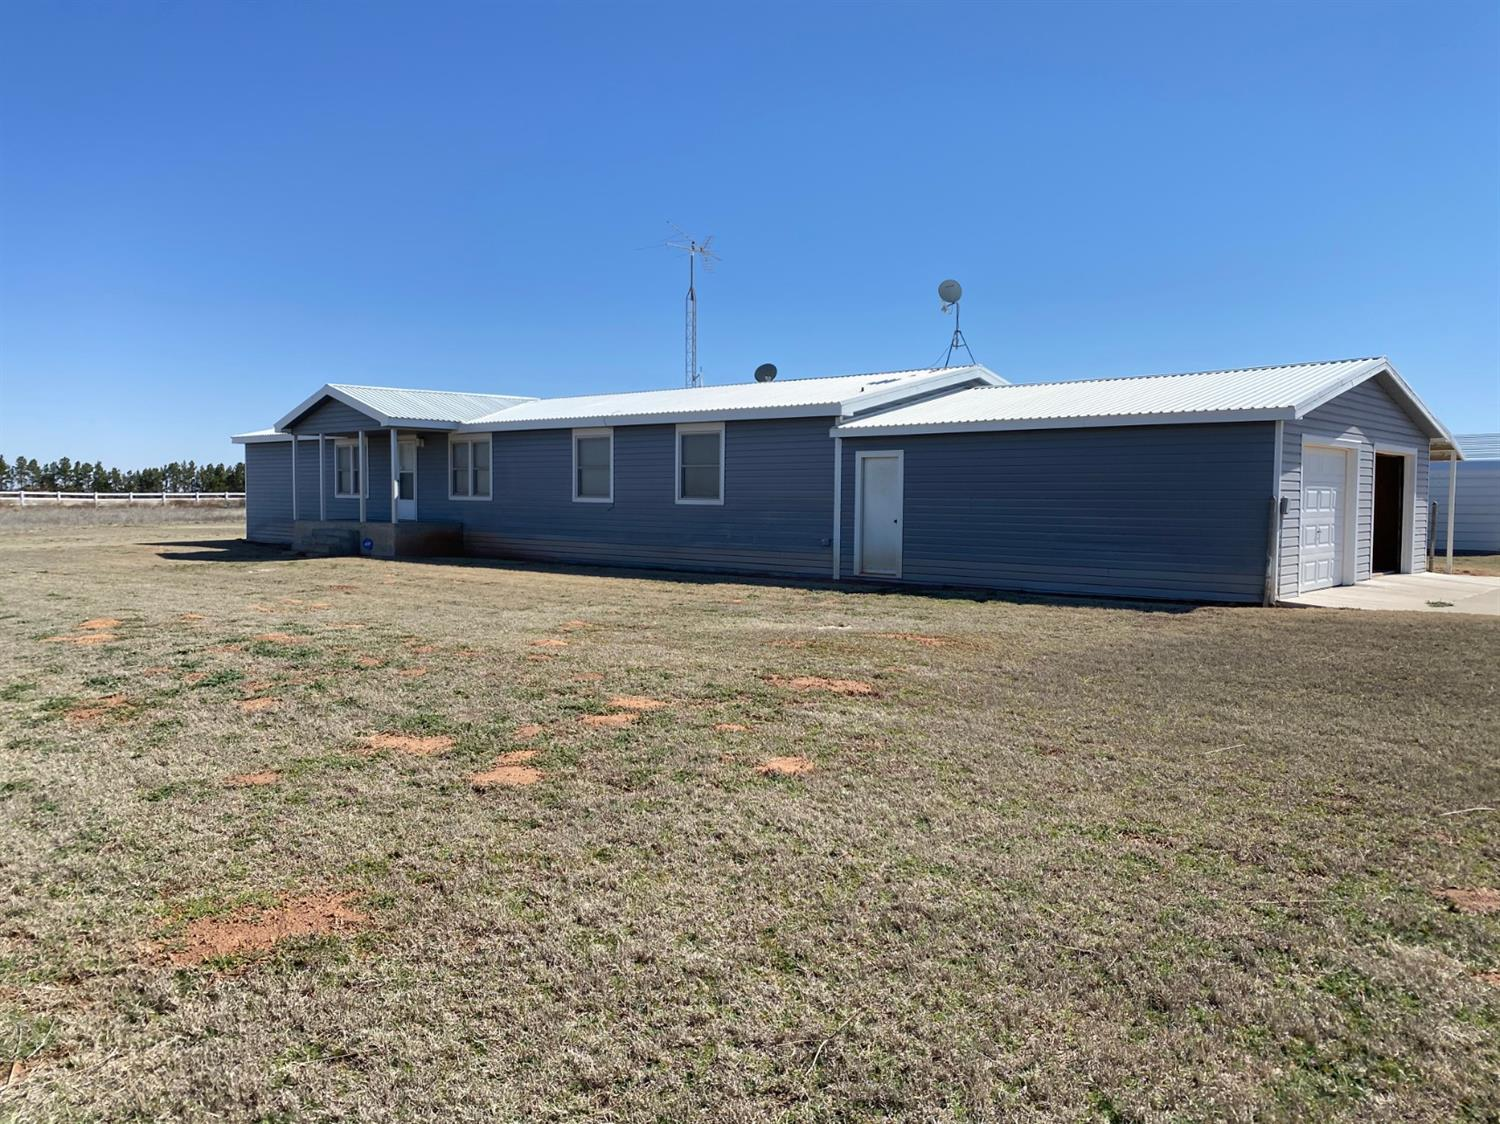 Great 4 bedroom, 3 bath house, with several shops that sits on 10 acres. Lots of potential and plenty of space. Dont miss this one!